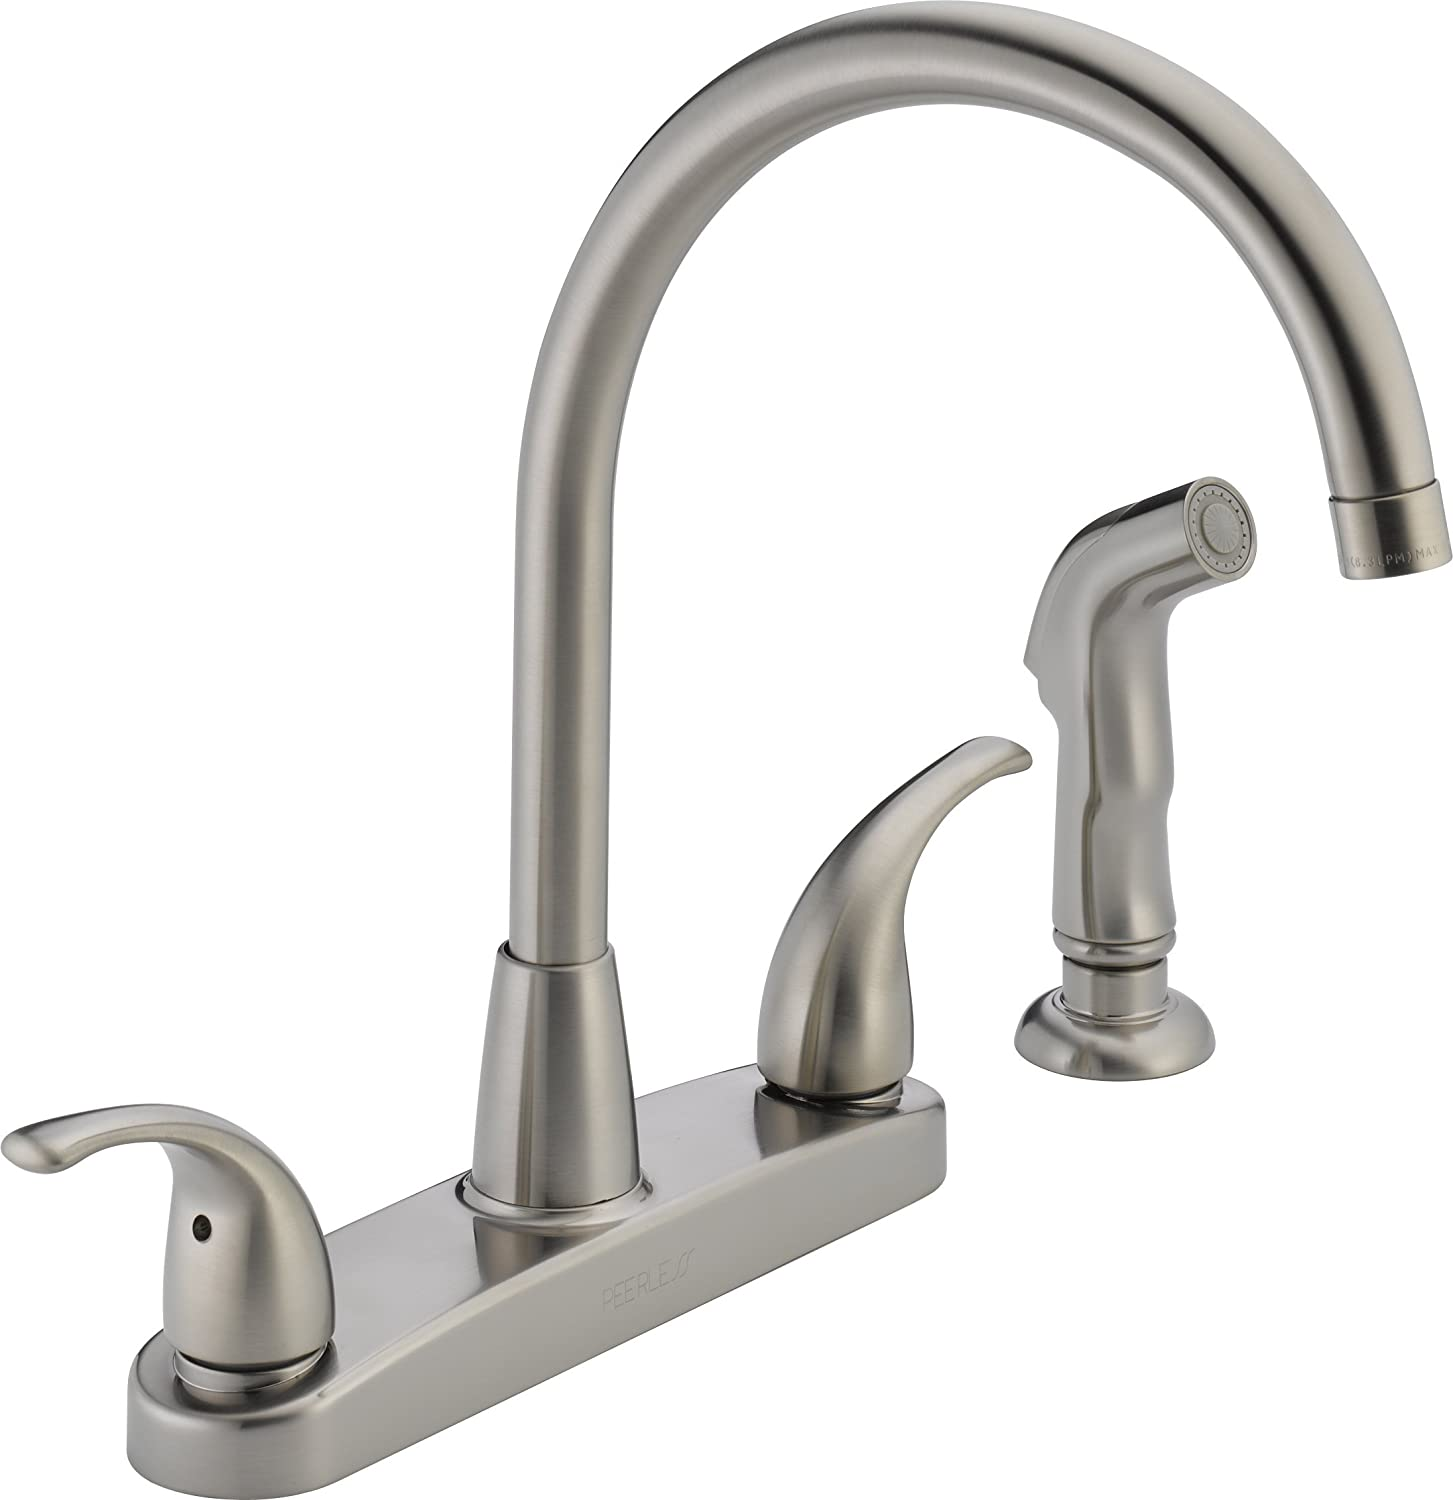 Peerless P299578LF-SS Choice Two Handle Kitchen Faucet, Stainless (Certified Refurbished)